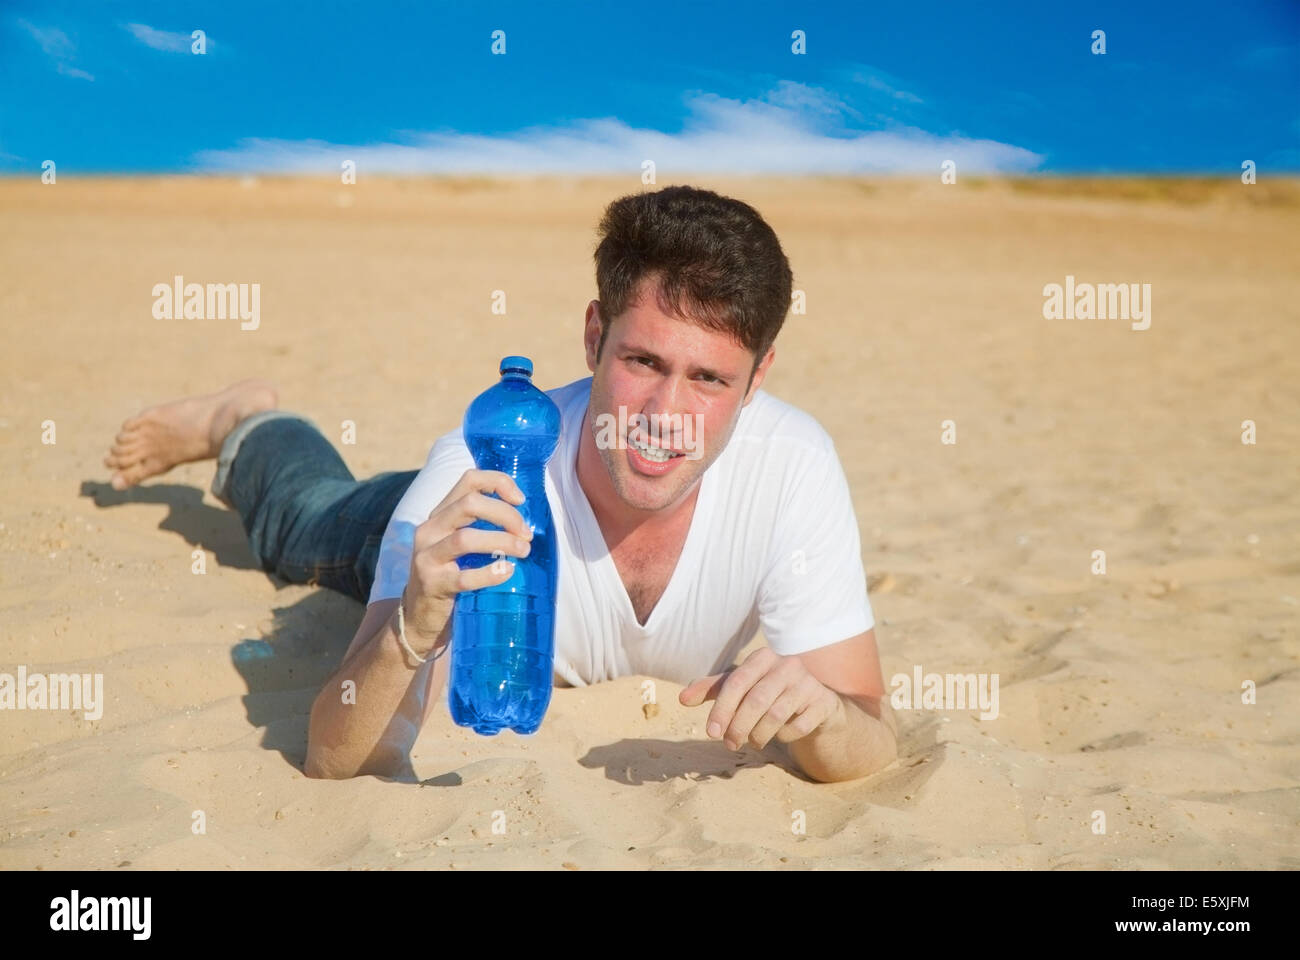 Caucasian man with a bottle of fresh water in desert - Stock Image